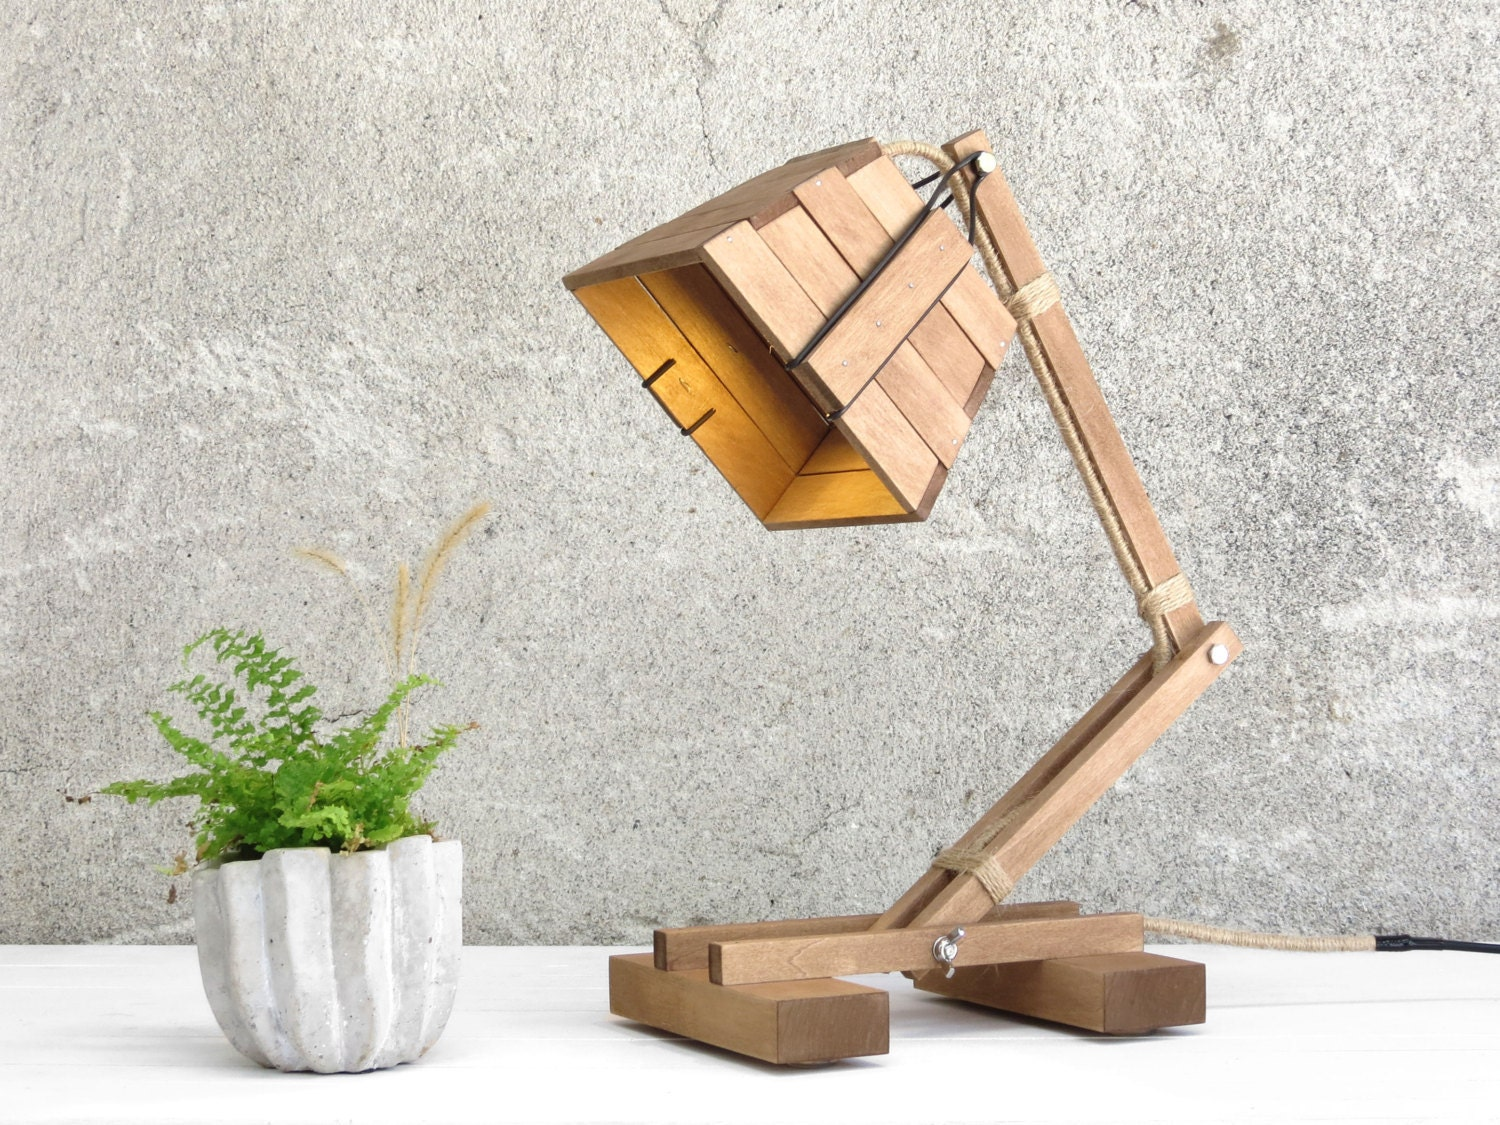 Tunto Powerkiss Lamp Made From Wood ·  Https://img0.etsystatic.com/064/0/7279722/ Images